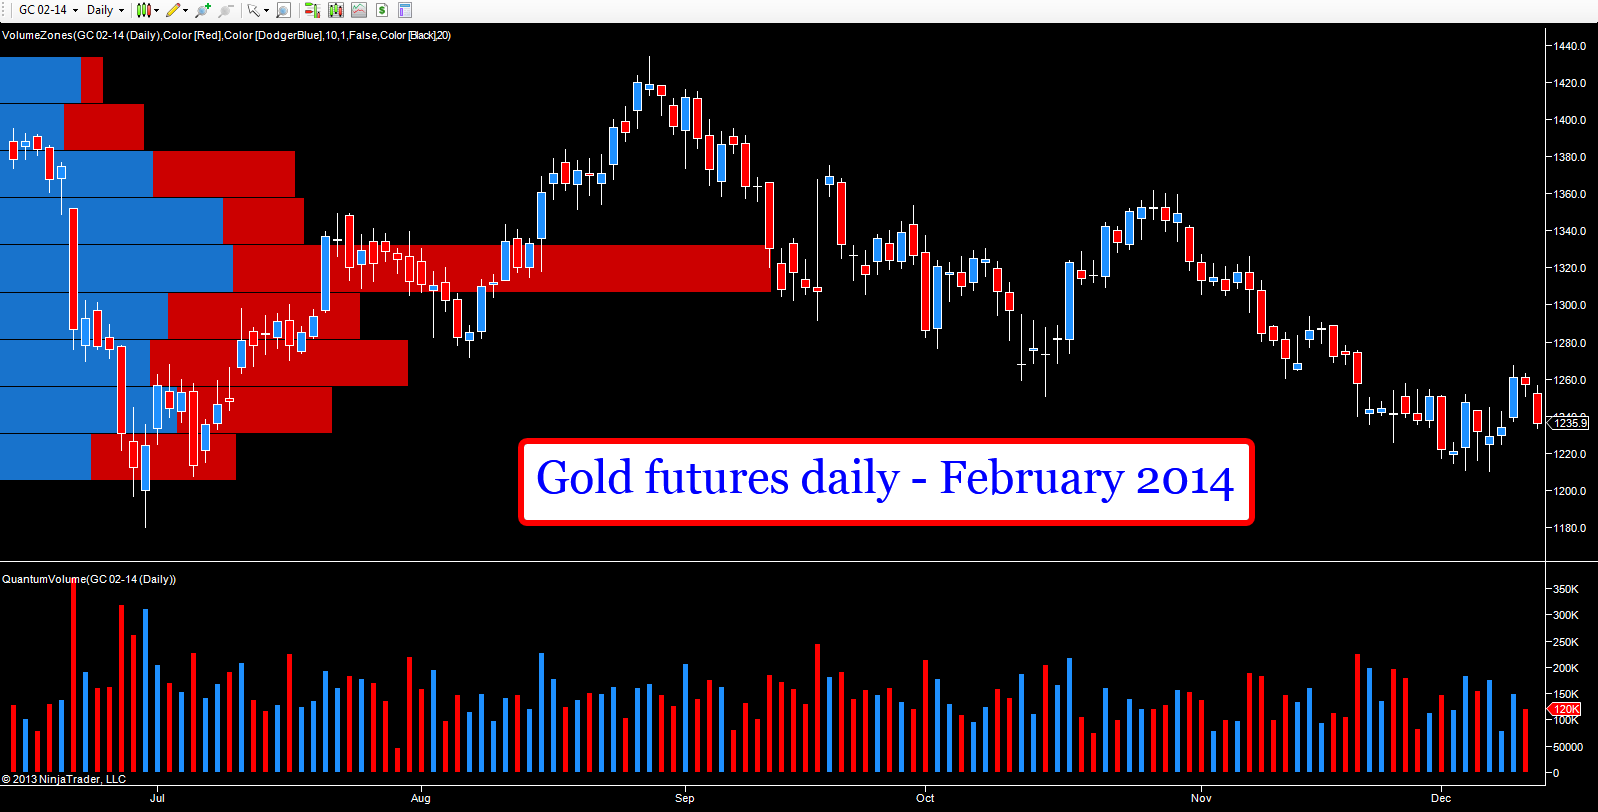 Gold futures daily chart - February 2014 contract